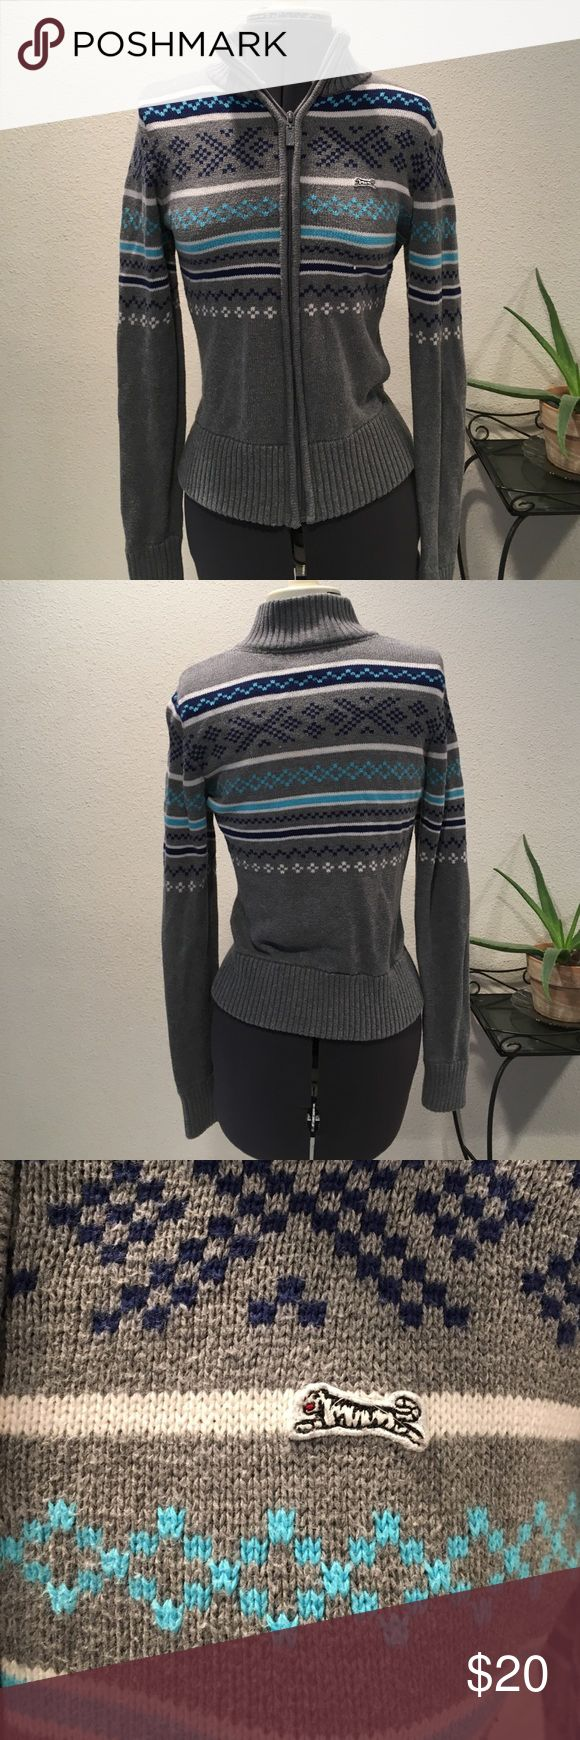 Winter Zip Up Sweater Le Tigre Winter sweater in gray with blue and white stitching :) 100% cotton. Good loved condition. Size Large in Juniors (not Women's sizing) Sweaters